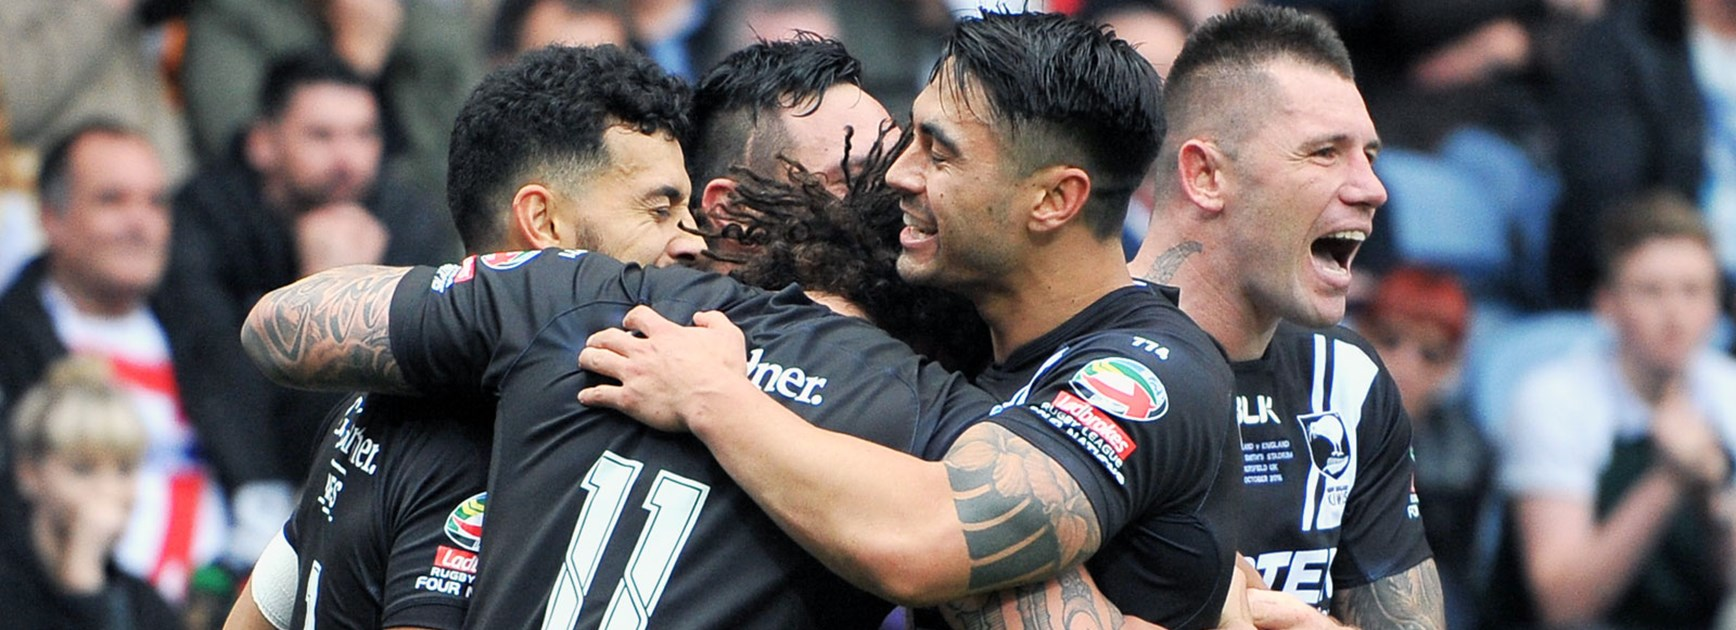 Kiwis players celebrate against England during their Four Nations clash.